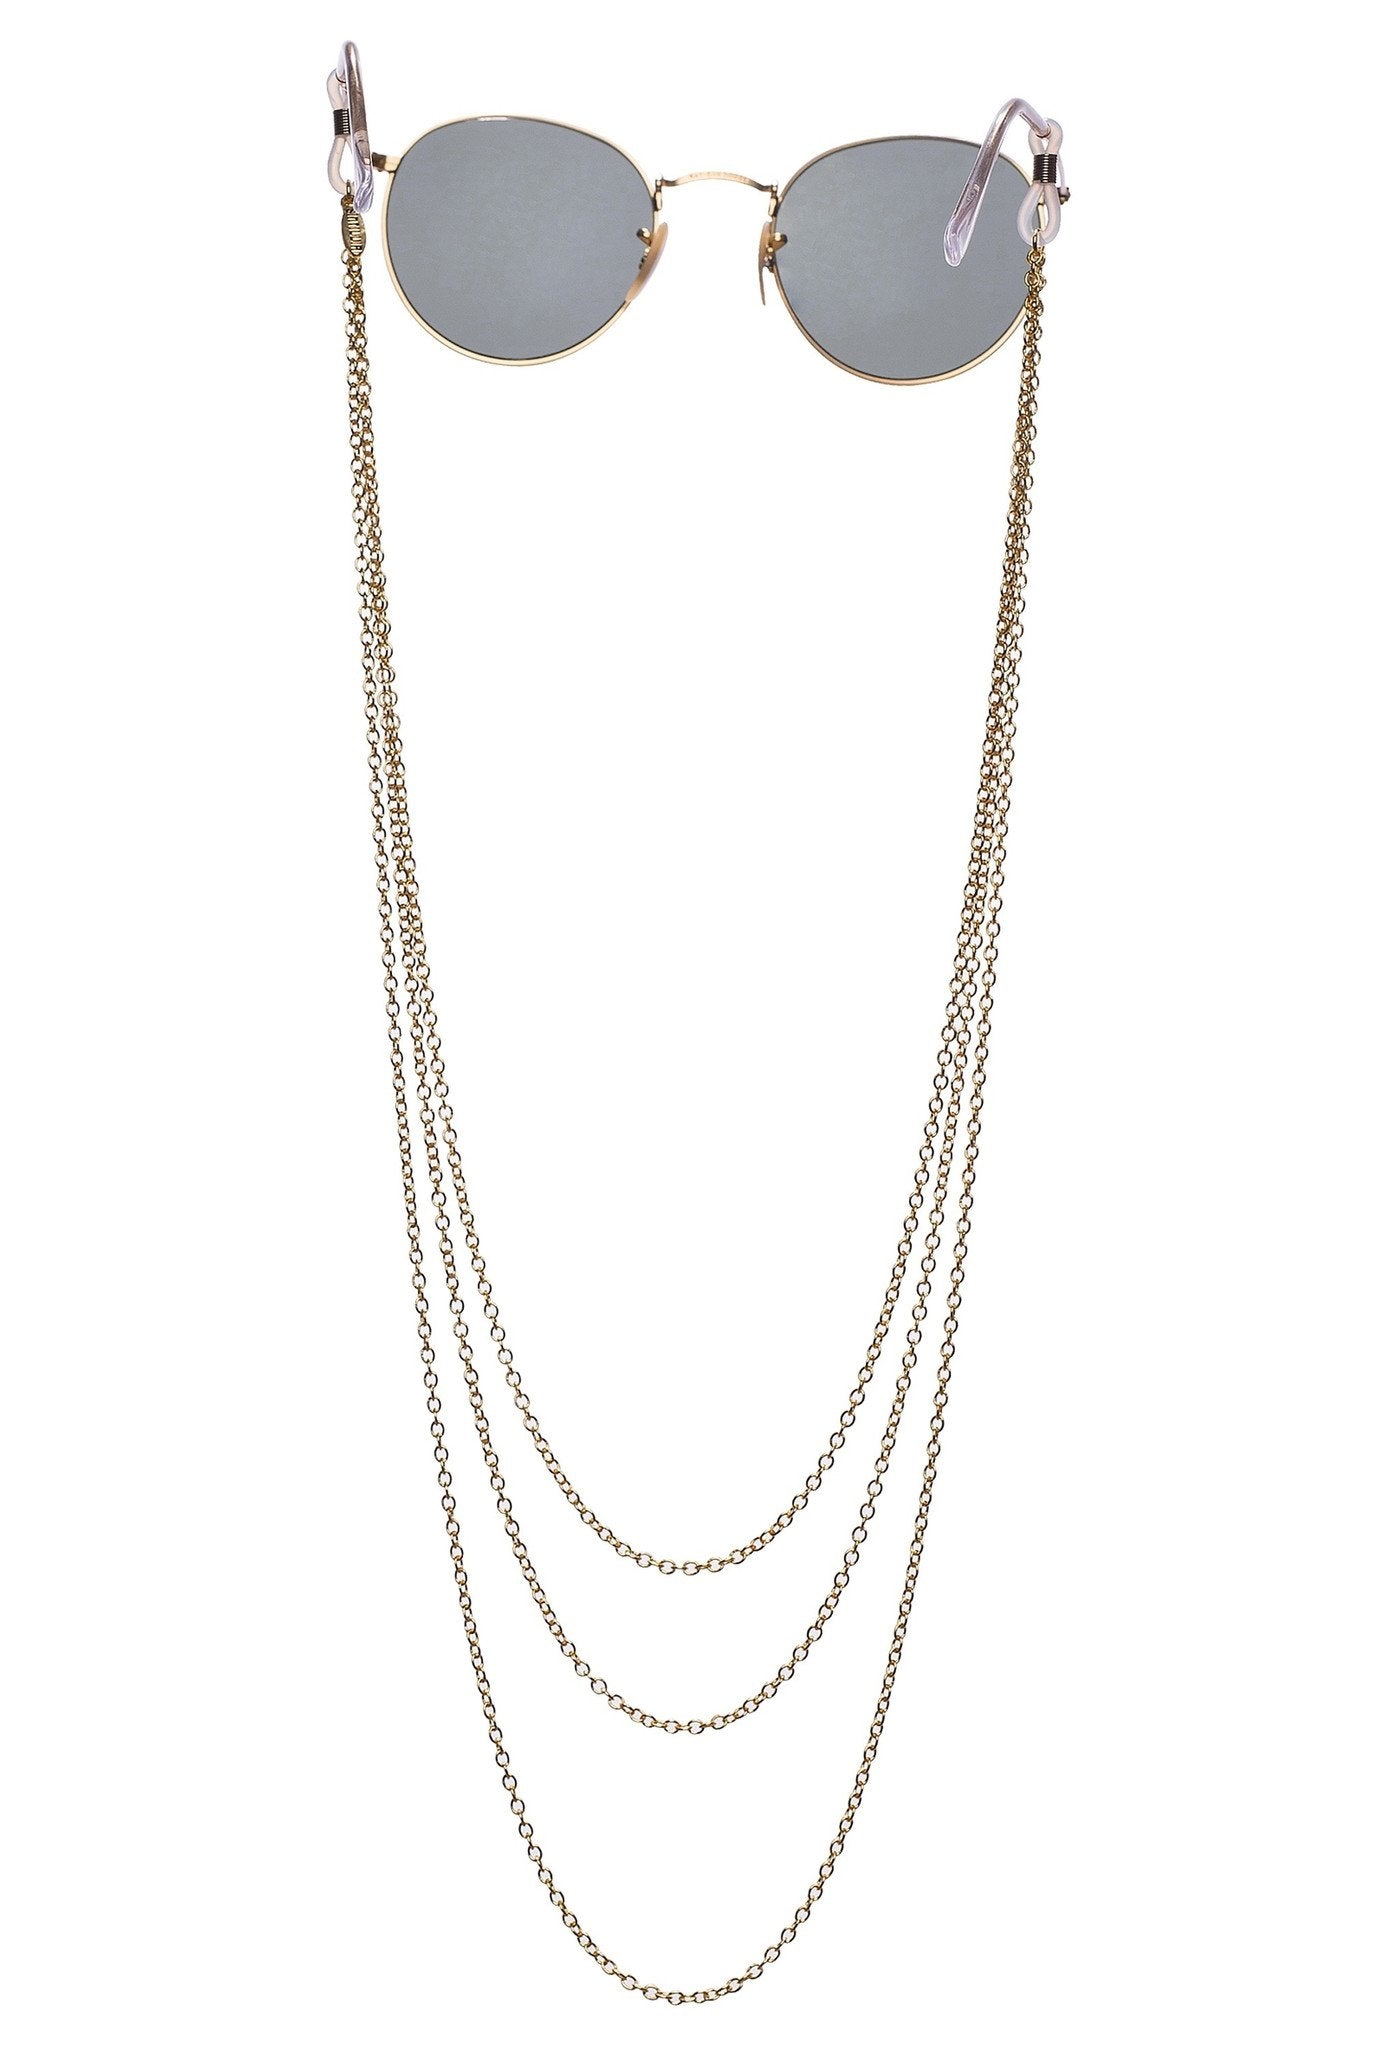 SINTILLIA CHAIN LACE SUNGLASS CHAIN - GOLD